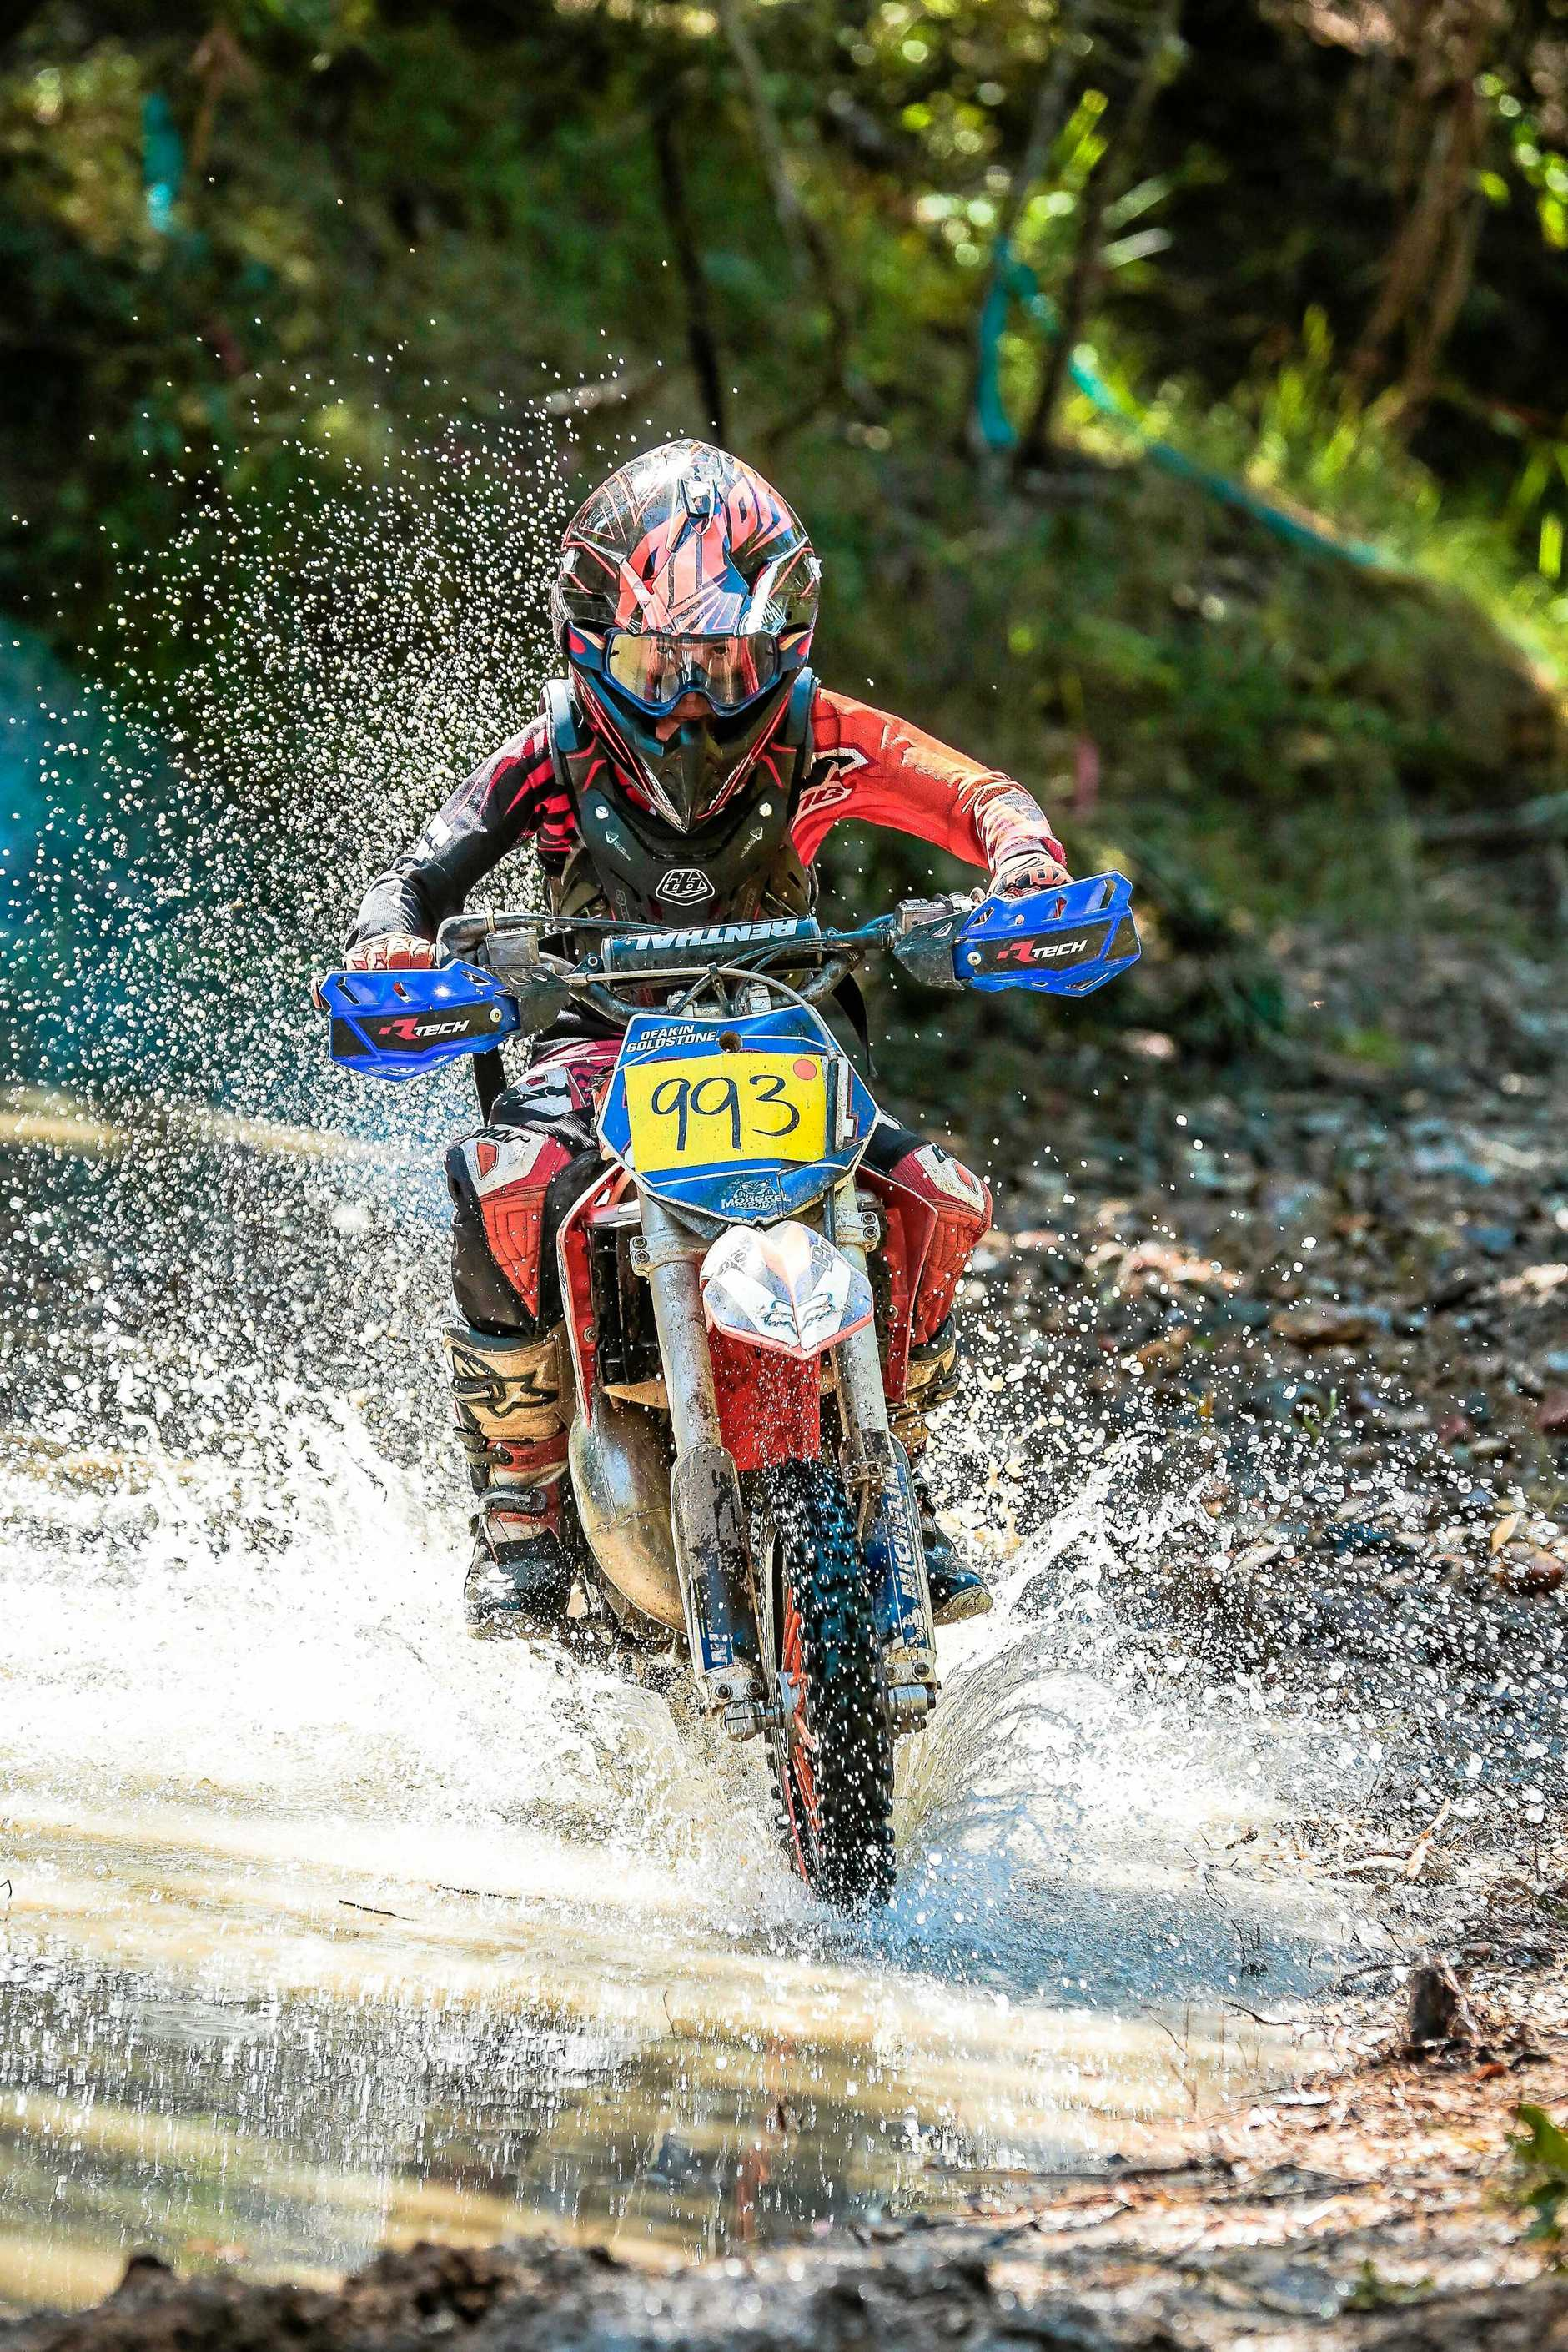 Junior action from off road challenge.